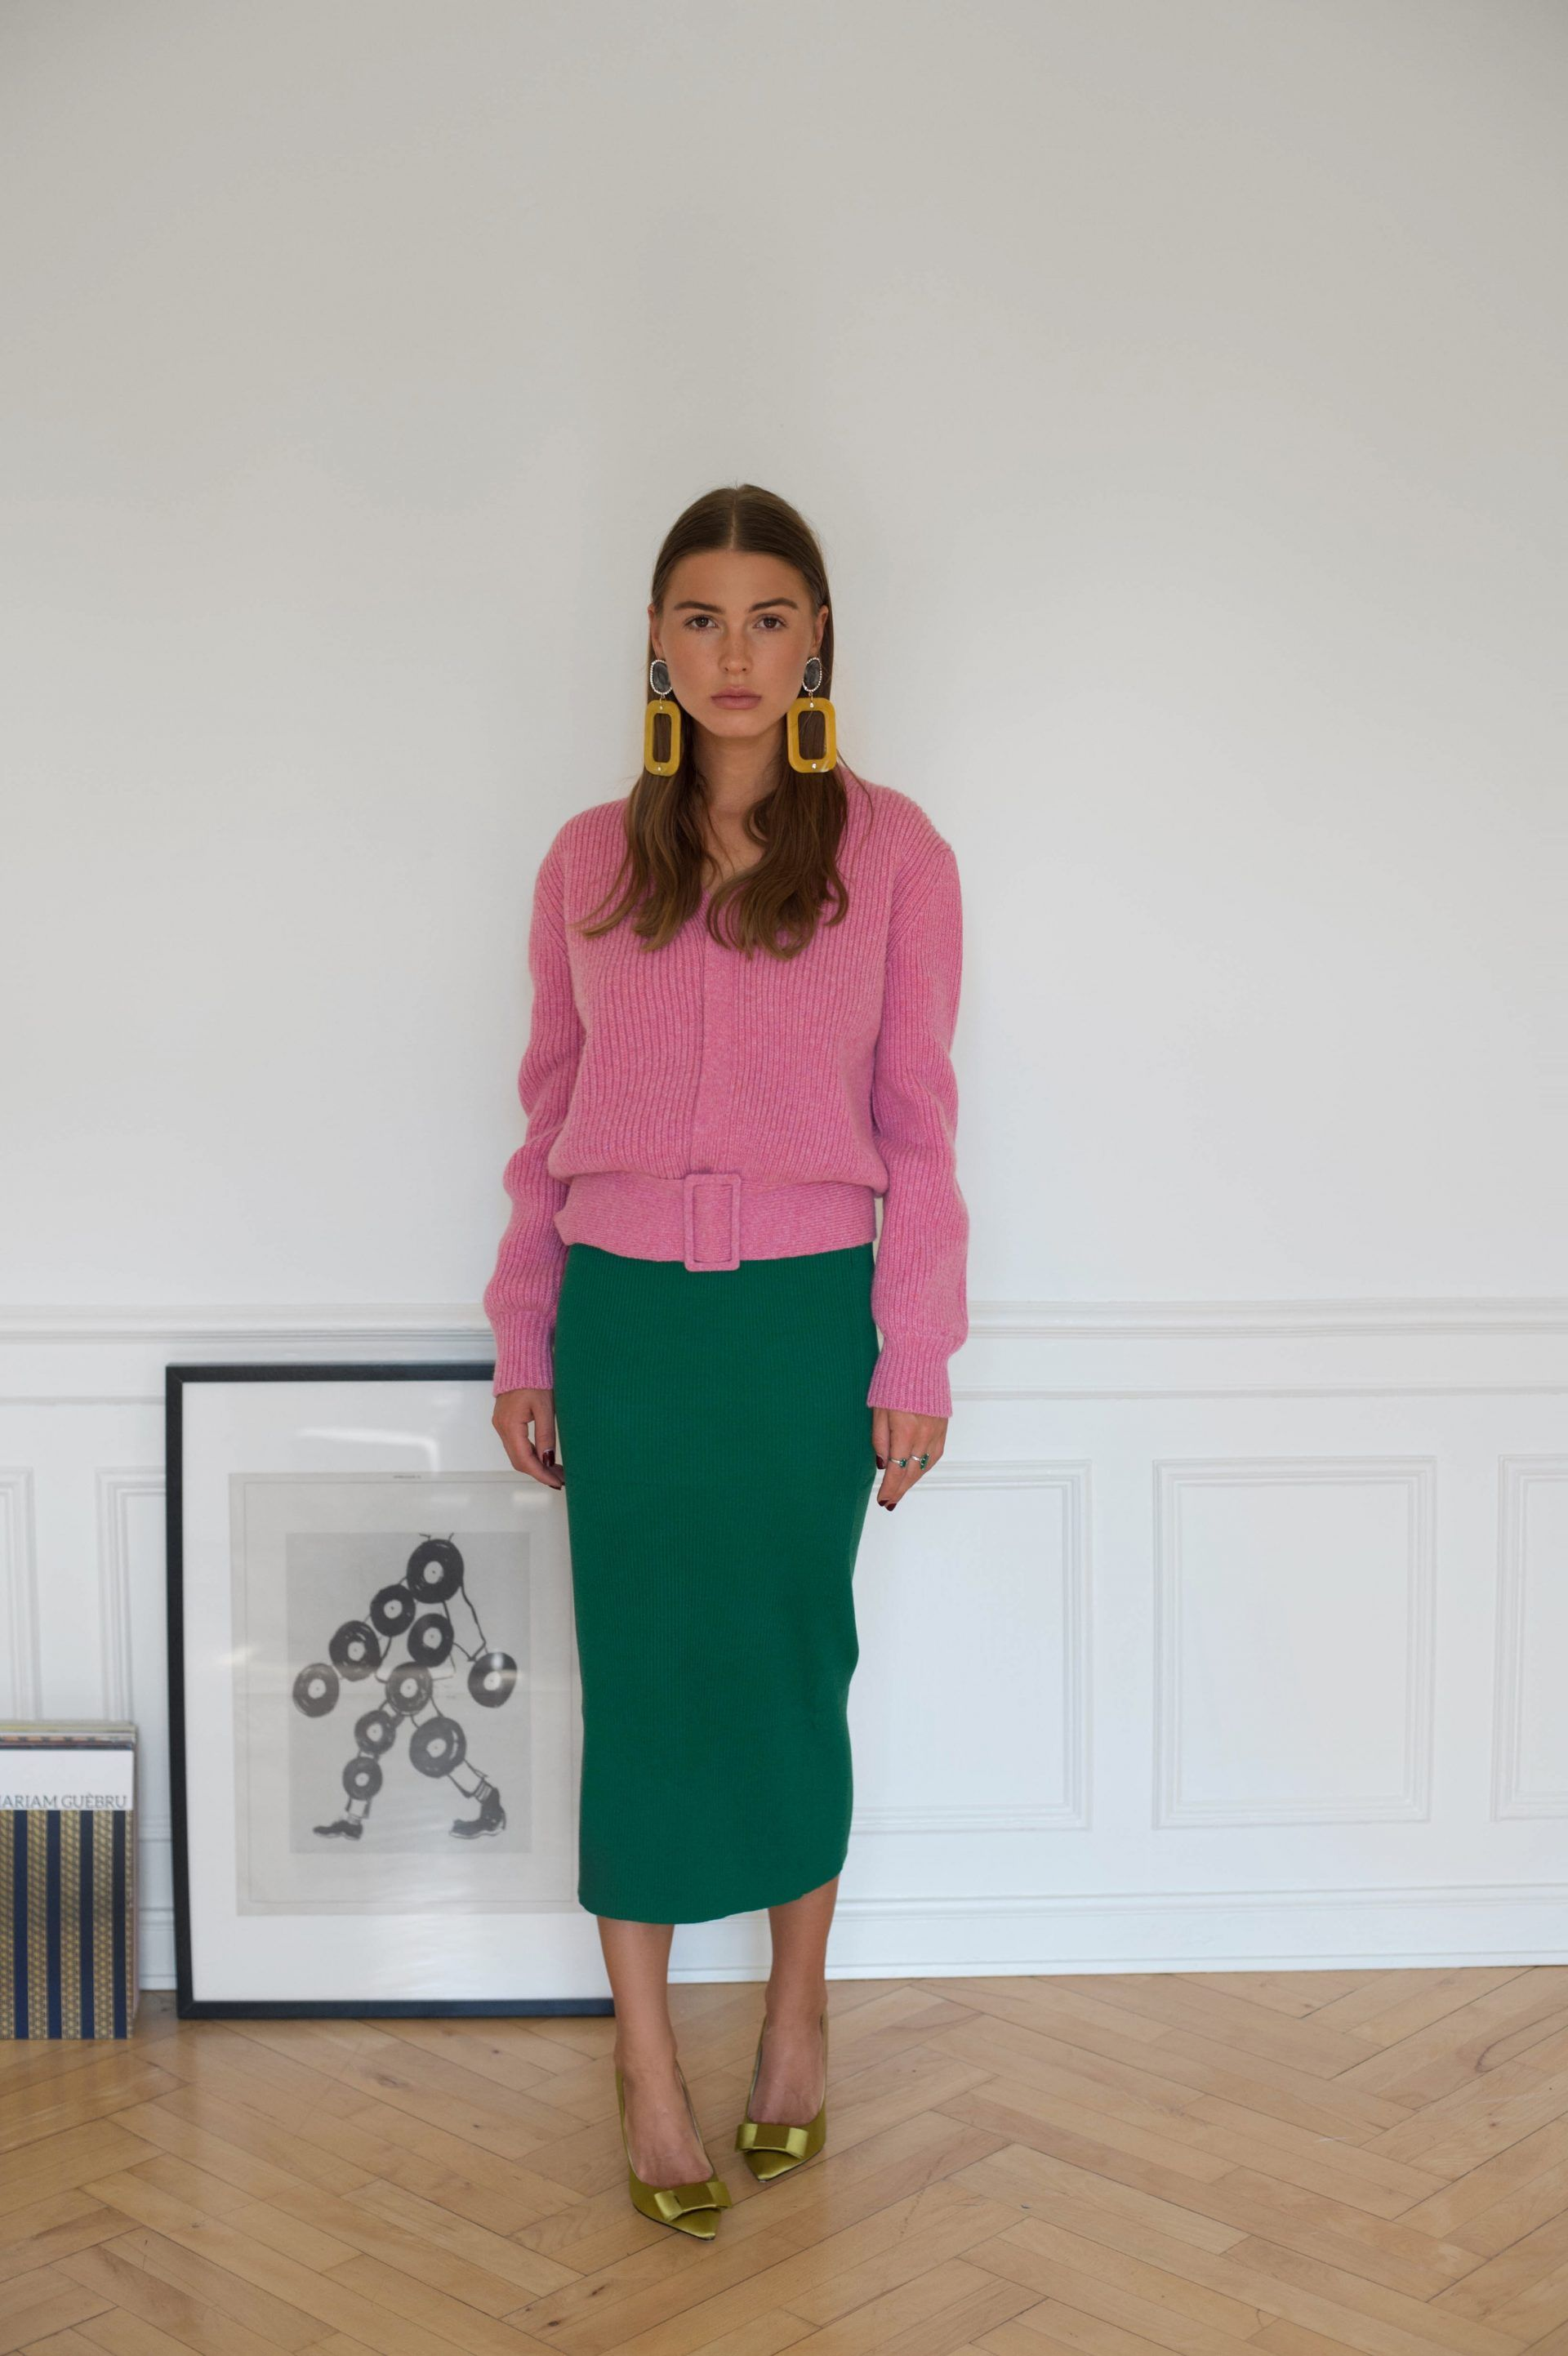 I love how green and pink clash but go well together. Credit: Sophia Roe of the Roe Diary wearing the #VBPreAW17